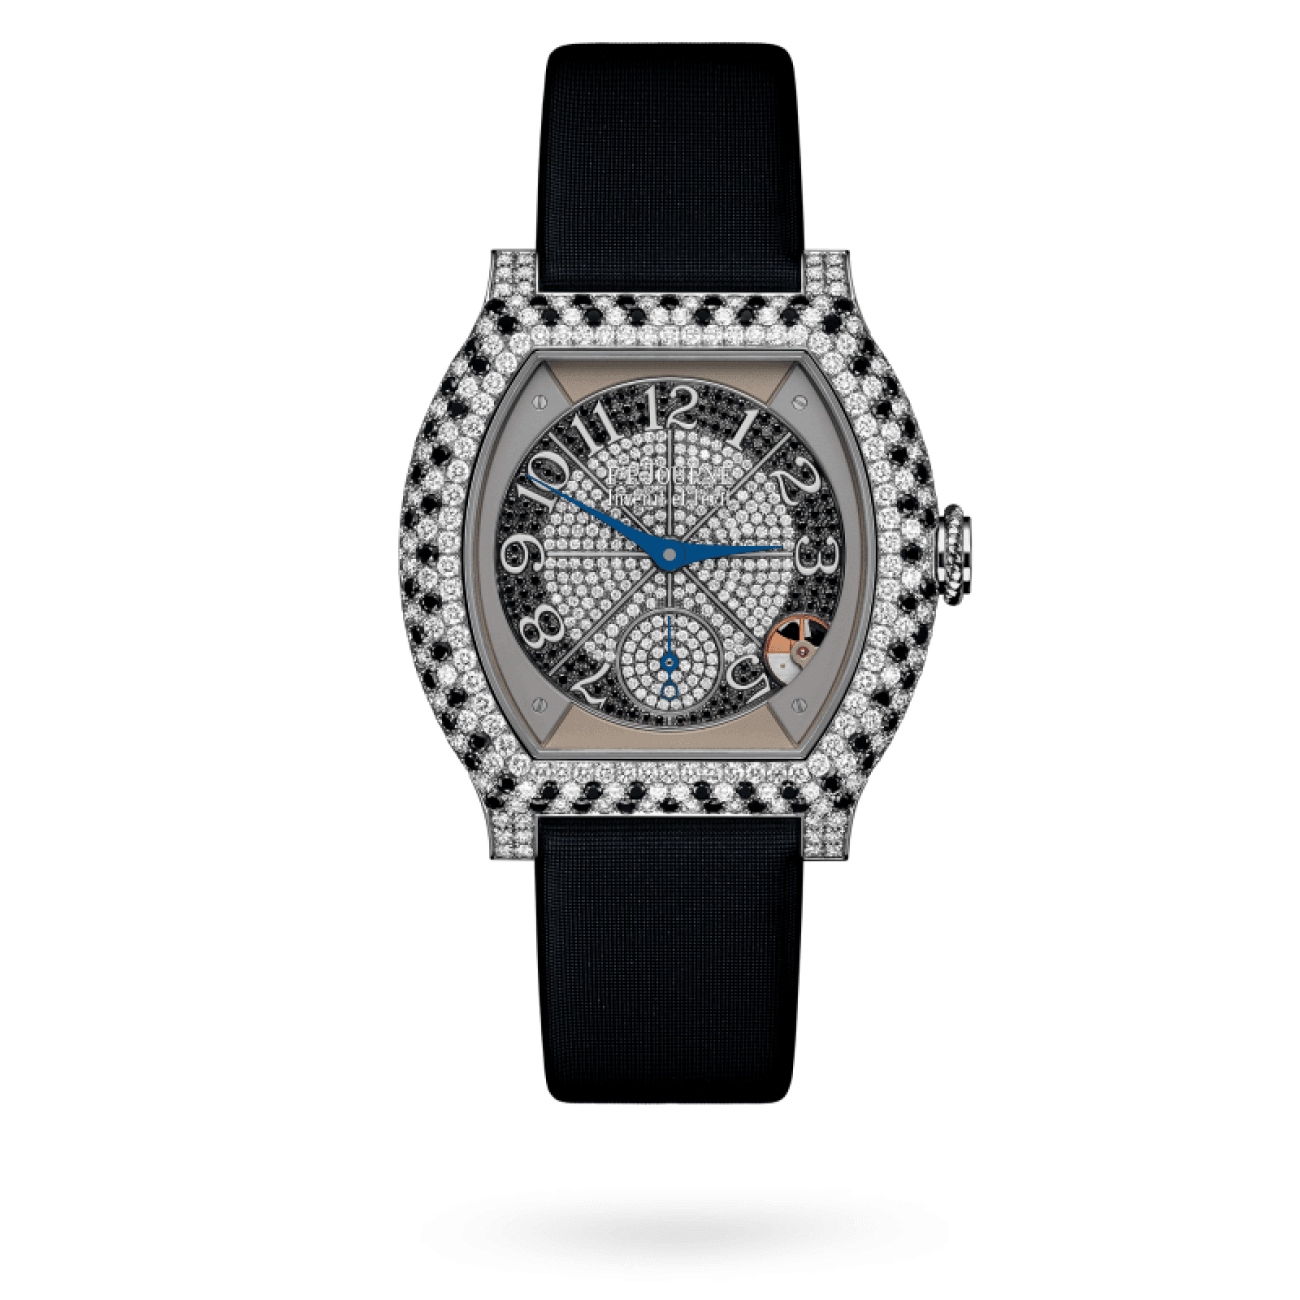 F. P. Journe Watches - Élégante 40Mm In Platinum With Diamonds And Precious Stones | Manfredi Jewels